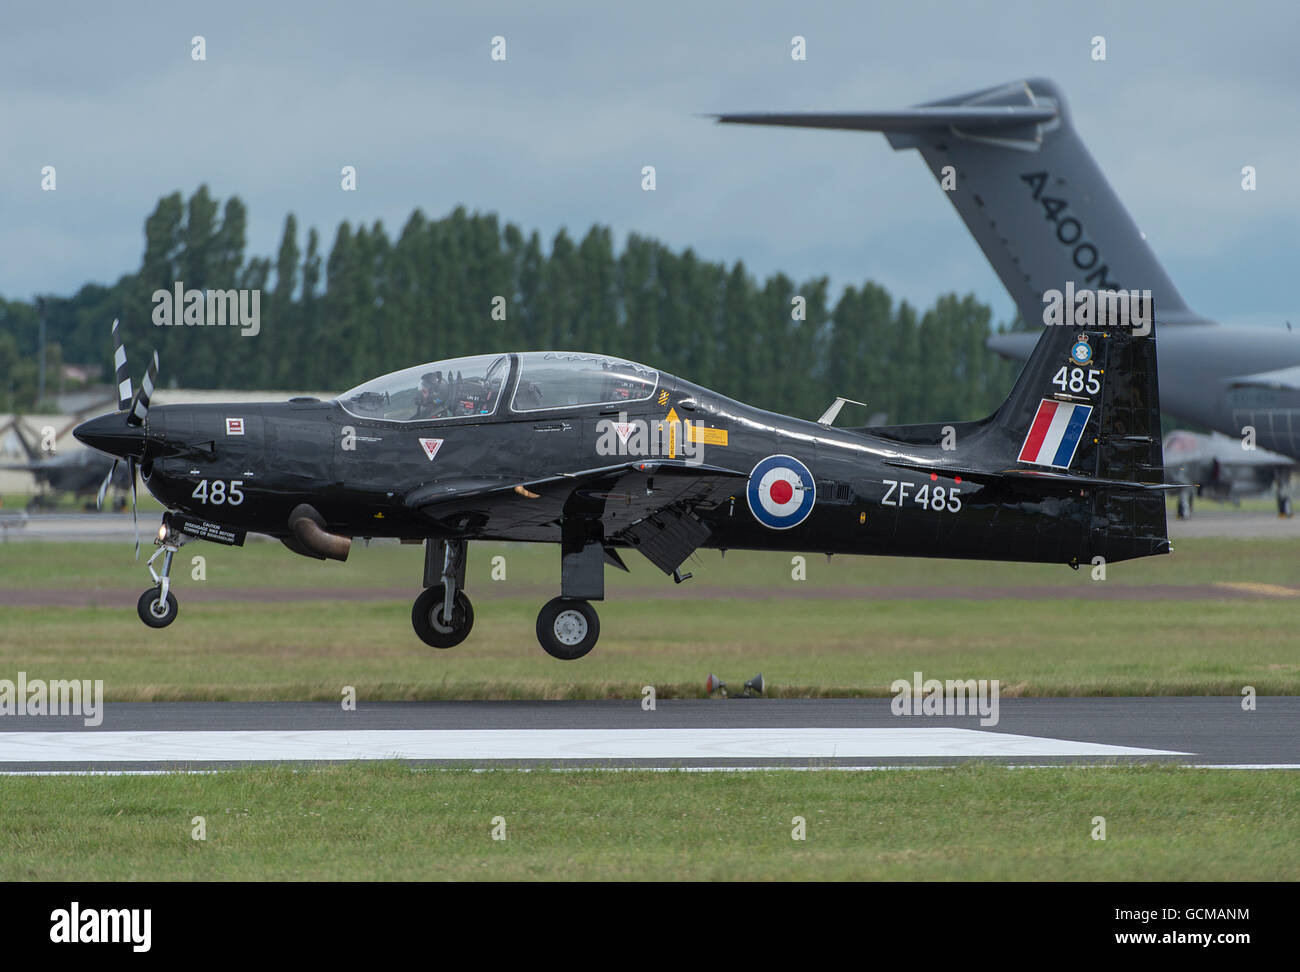 RAF Tucano Trainer arrives at The 2016 Royal International Air Tattoo, RAF Fairford, Gloucestershire. - Stock Image